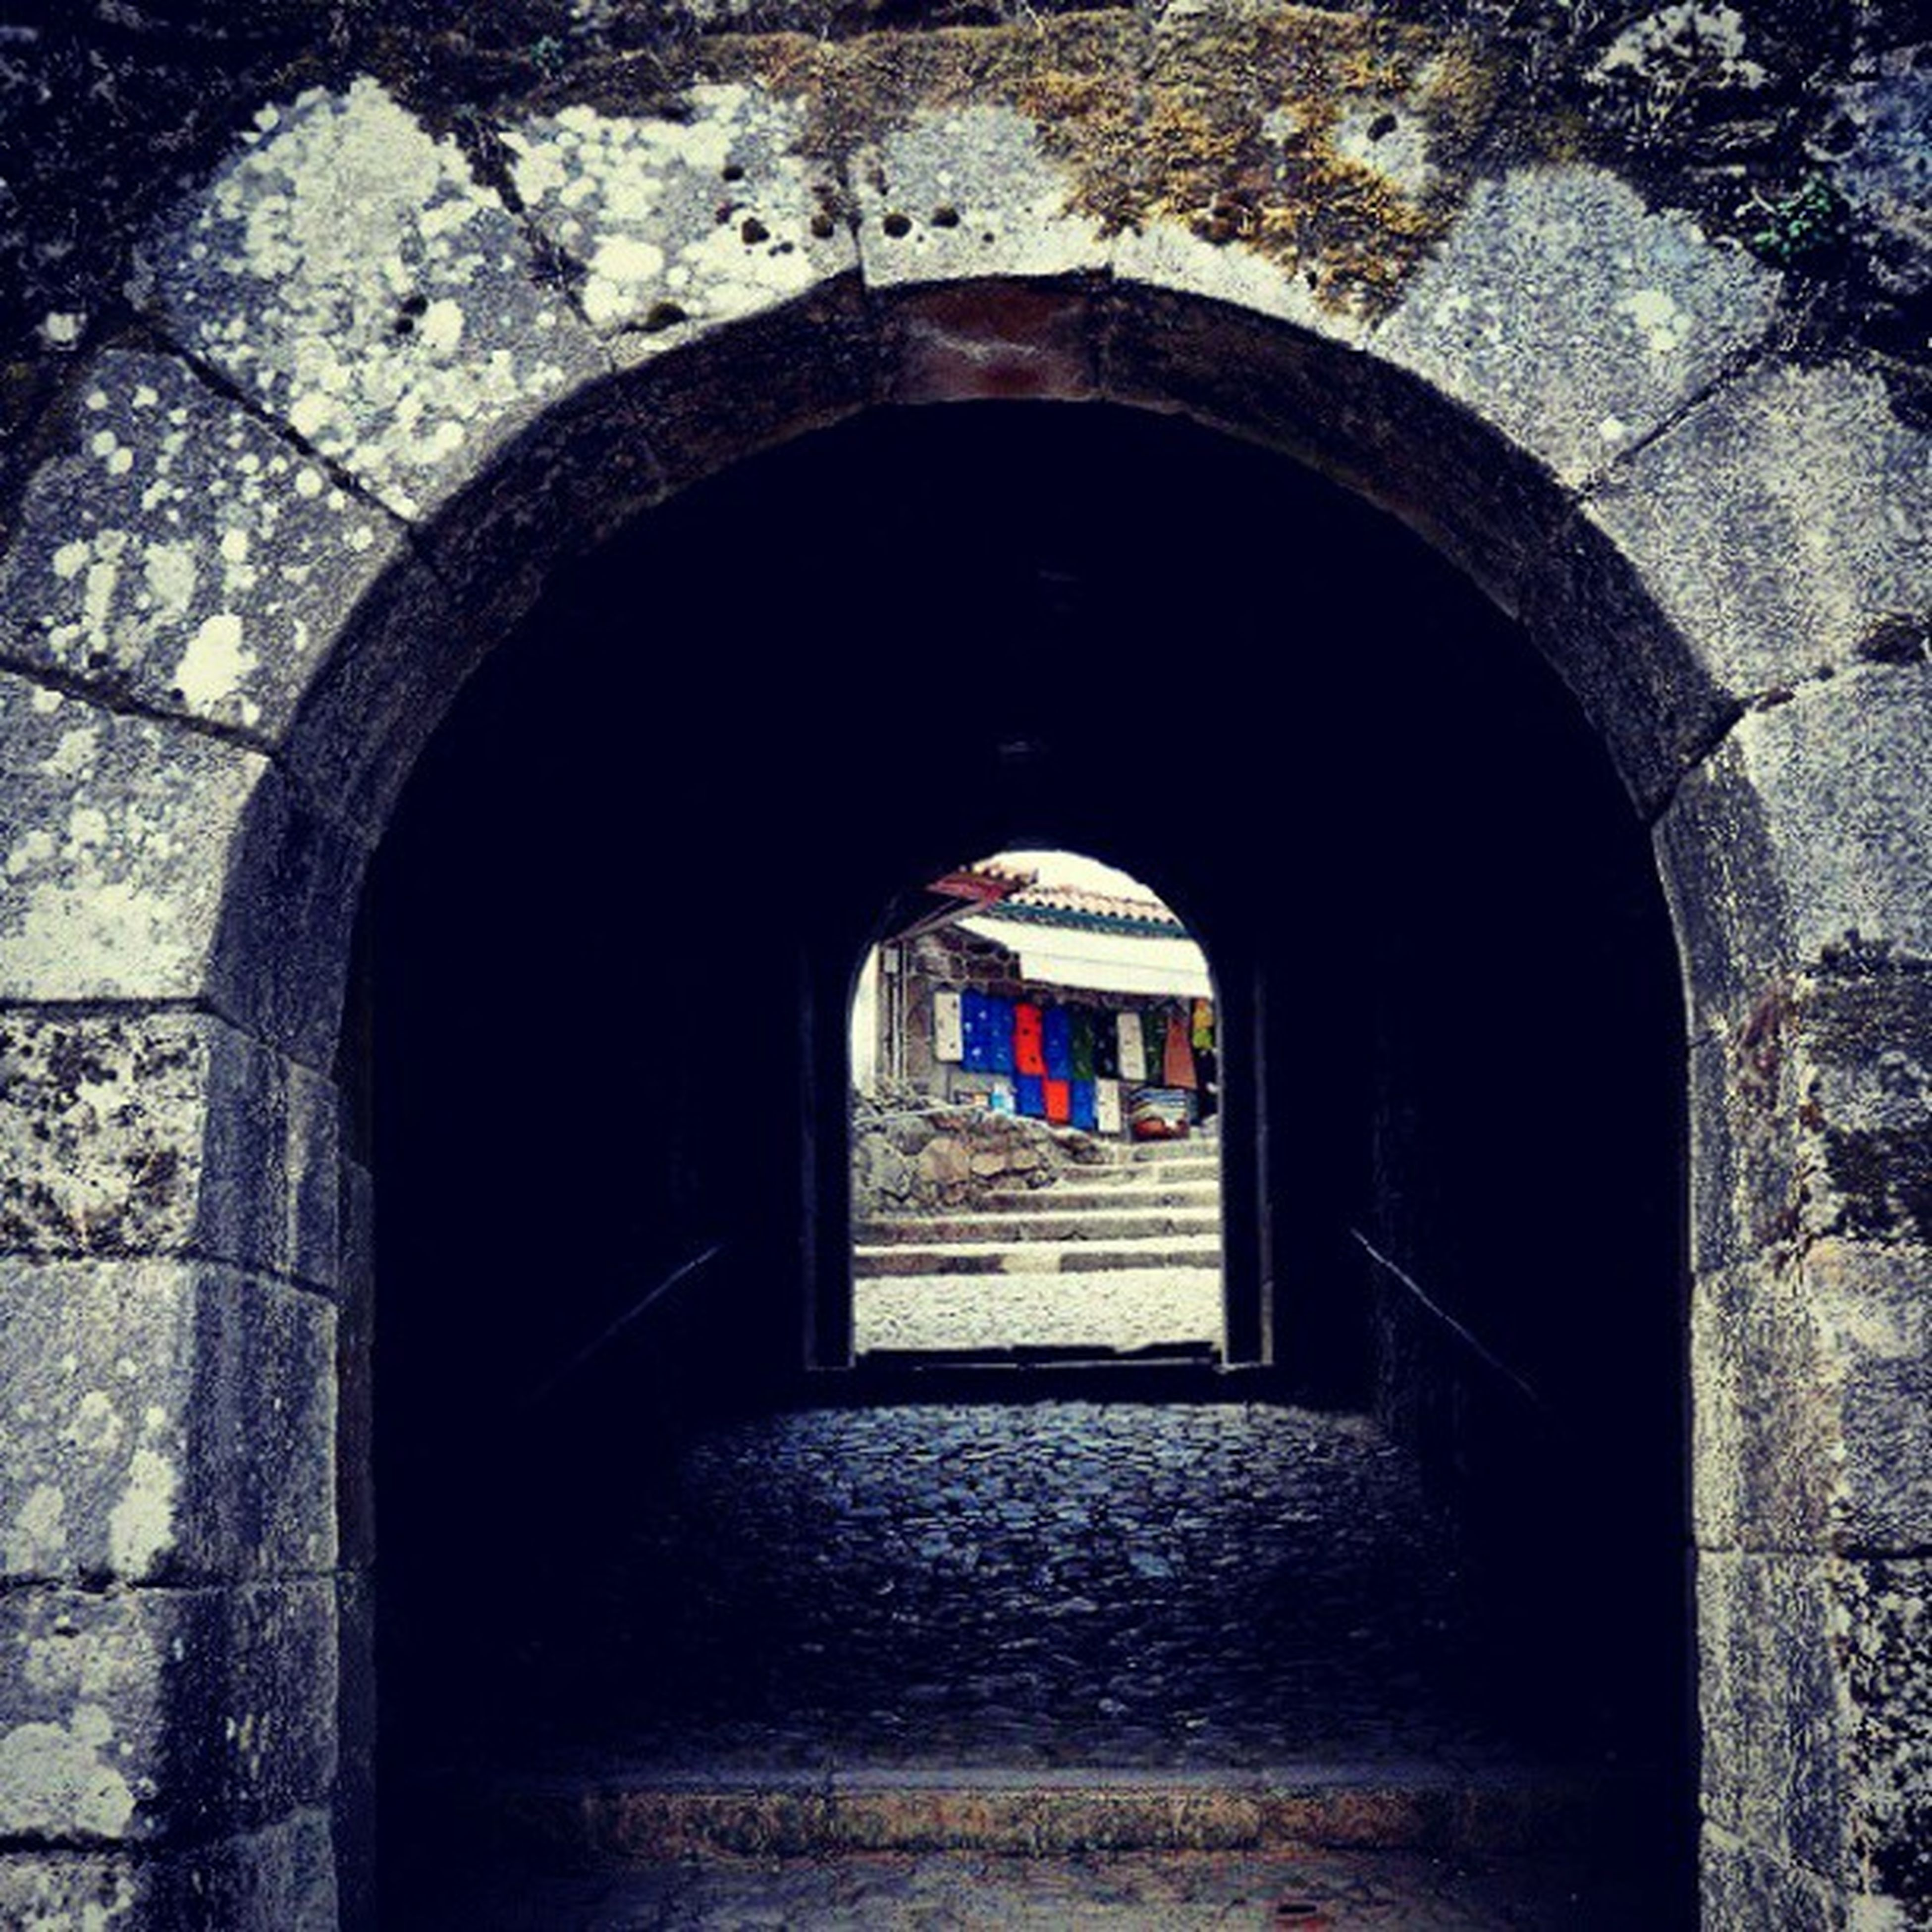 arch, architecture, built structure, the way forward, archway, tunnel, stone wall, building exterior, indoors, history, old, steps, diminishing perspective, arched, entrance, wall - building feature, walkway, day, cobblestone, narrow